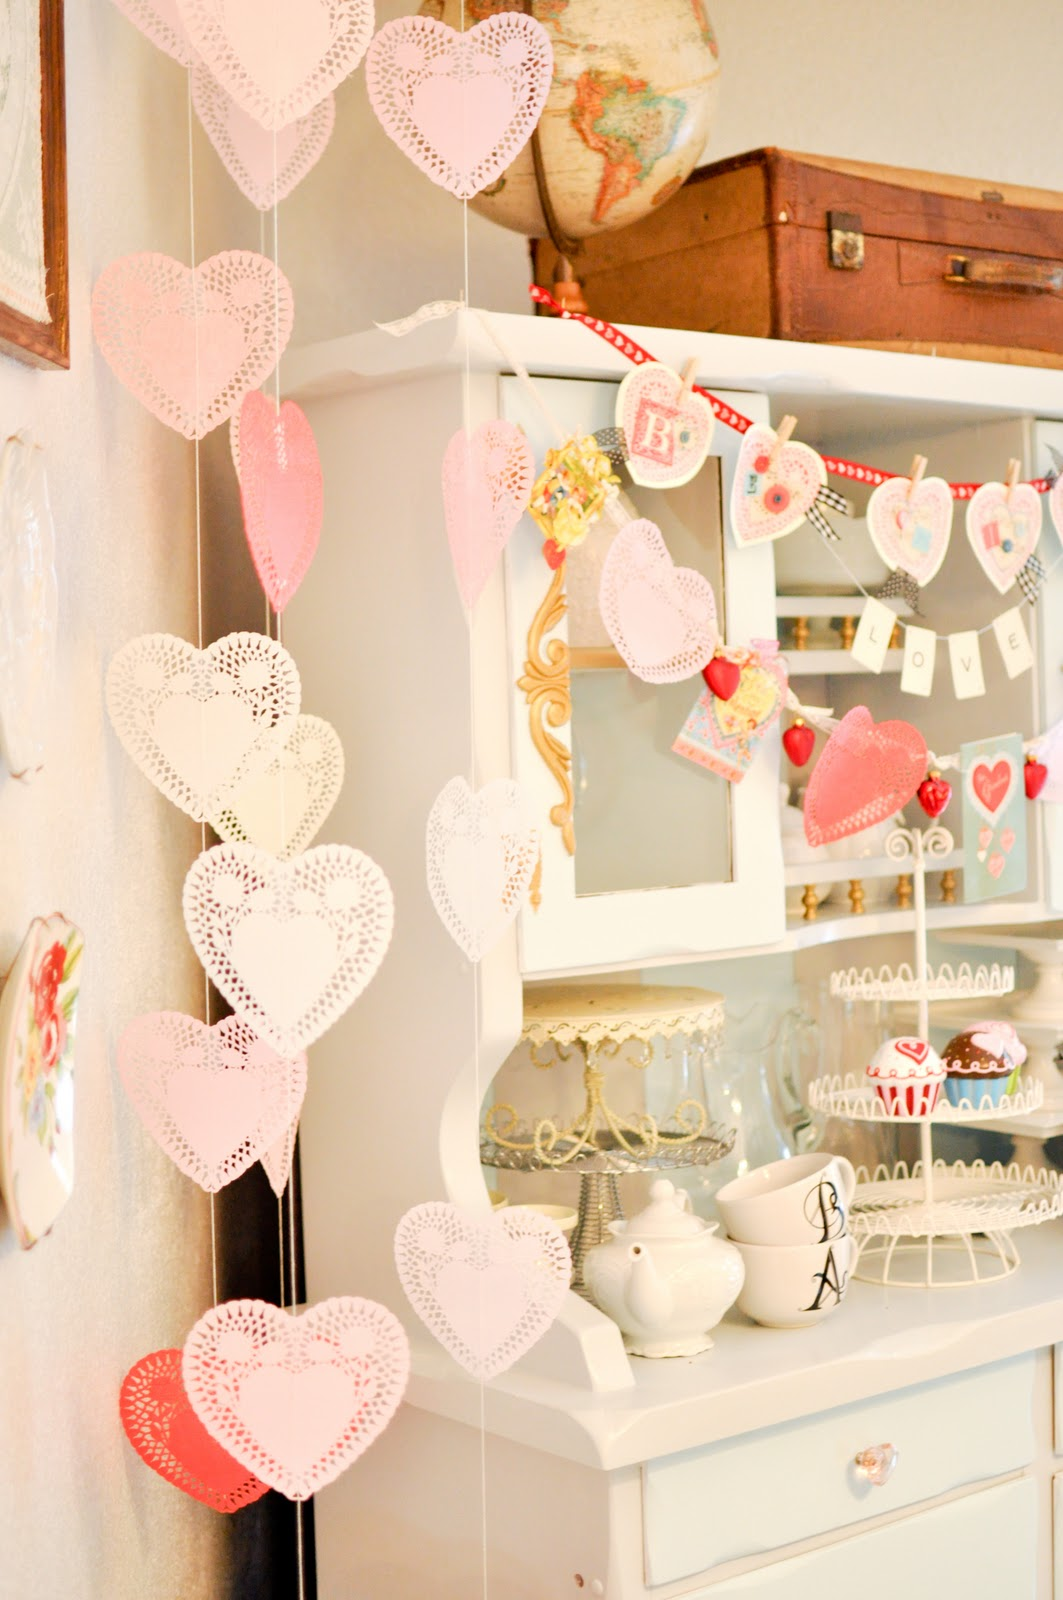 20 valentine 39 s day decorations ideas for your home for Heart decoration ideas